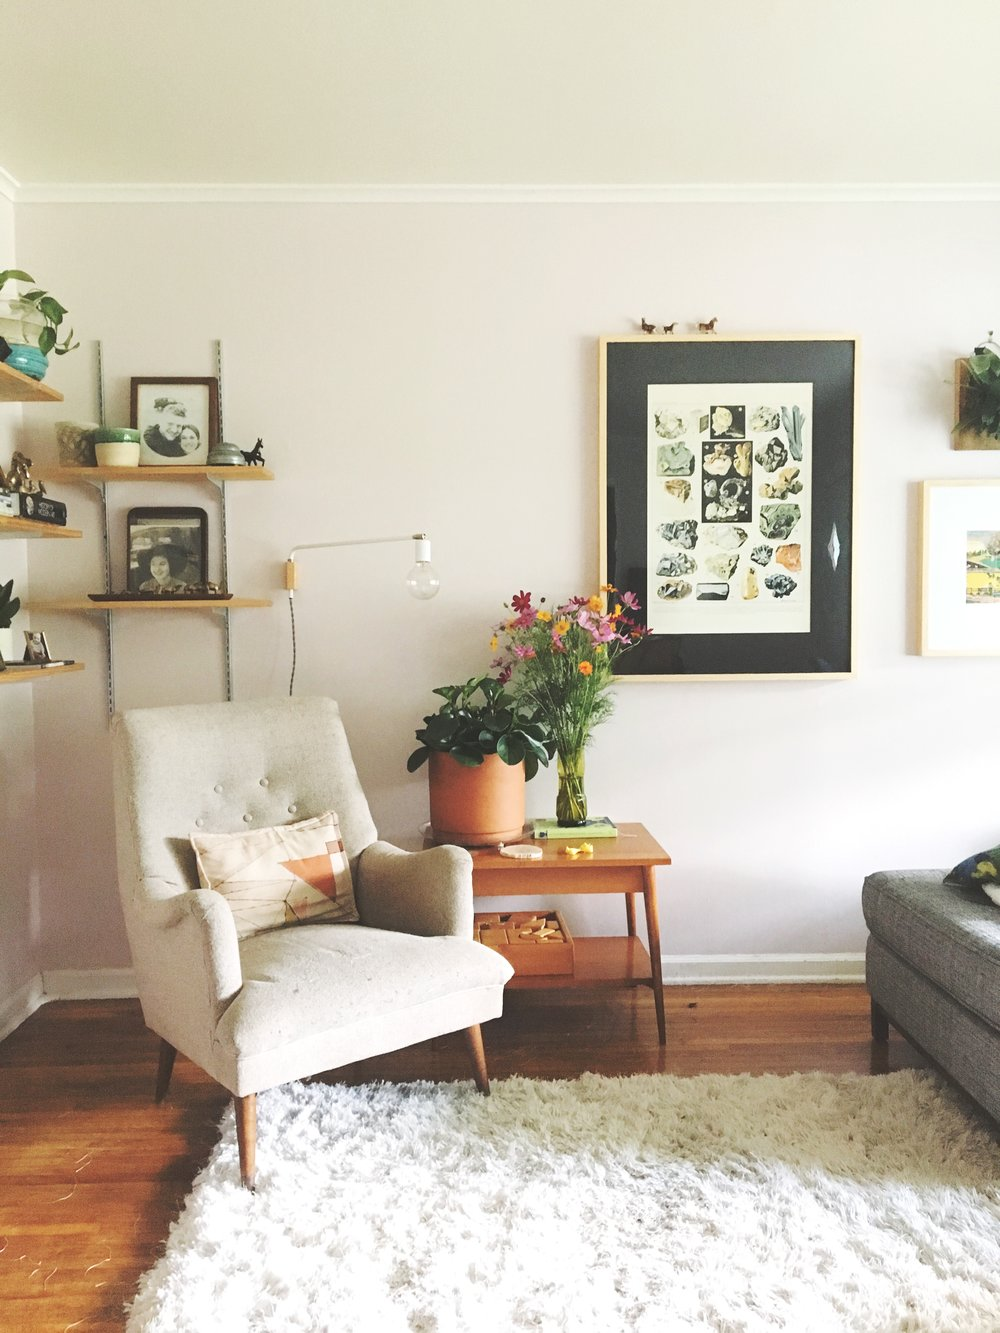 This week Daly painted the remaining three walls of her living room blush. Pretty!